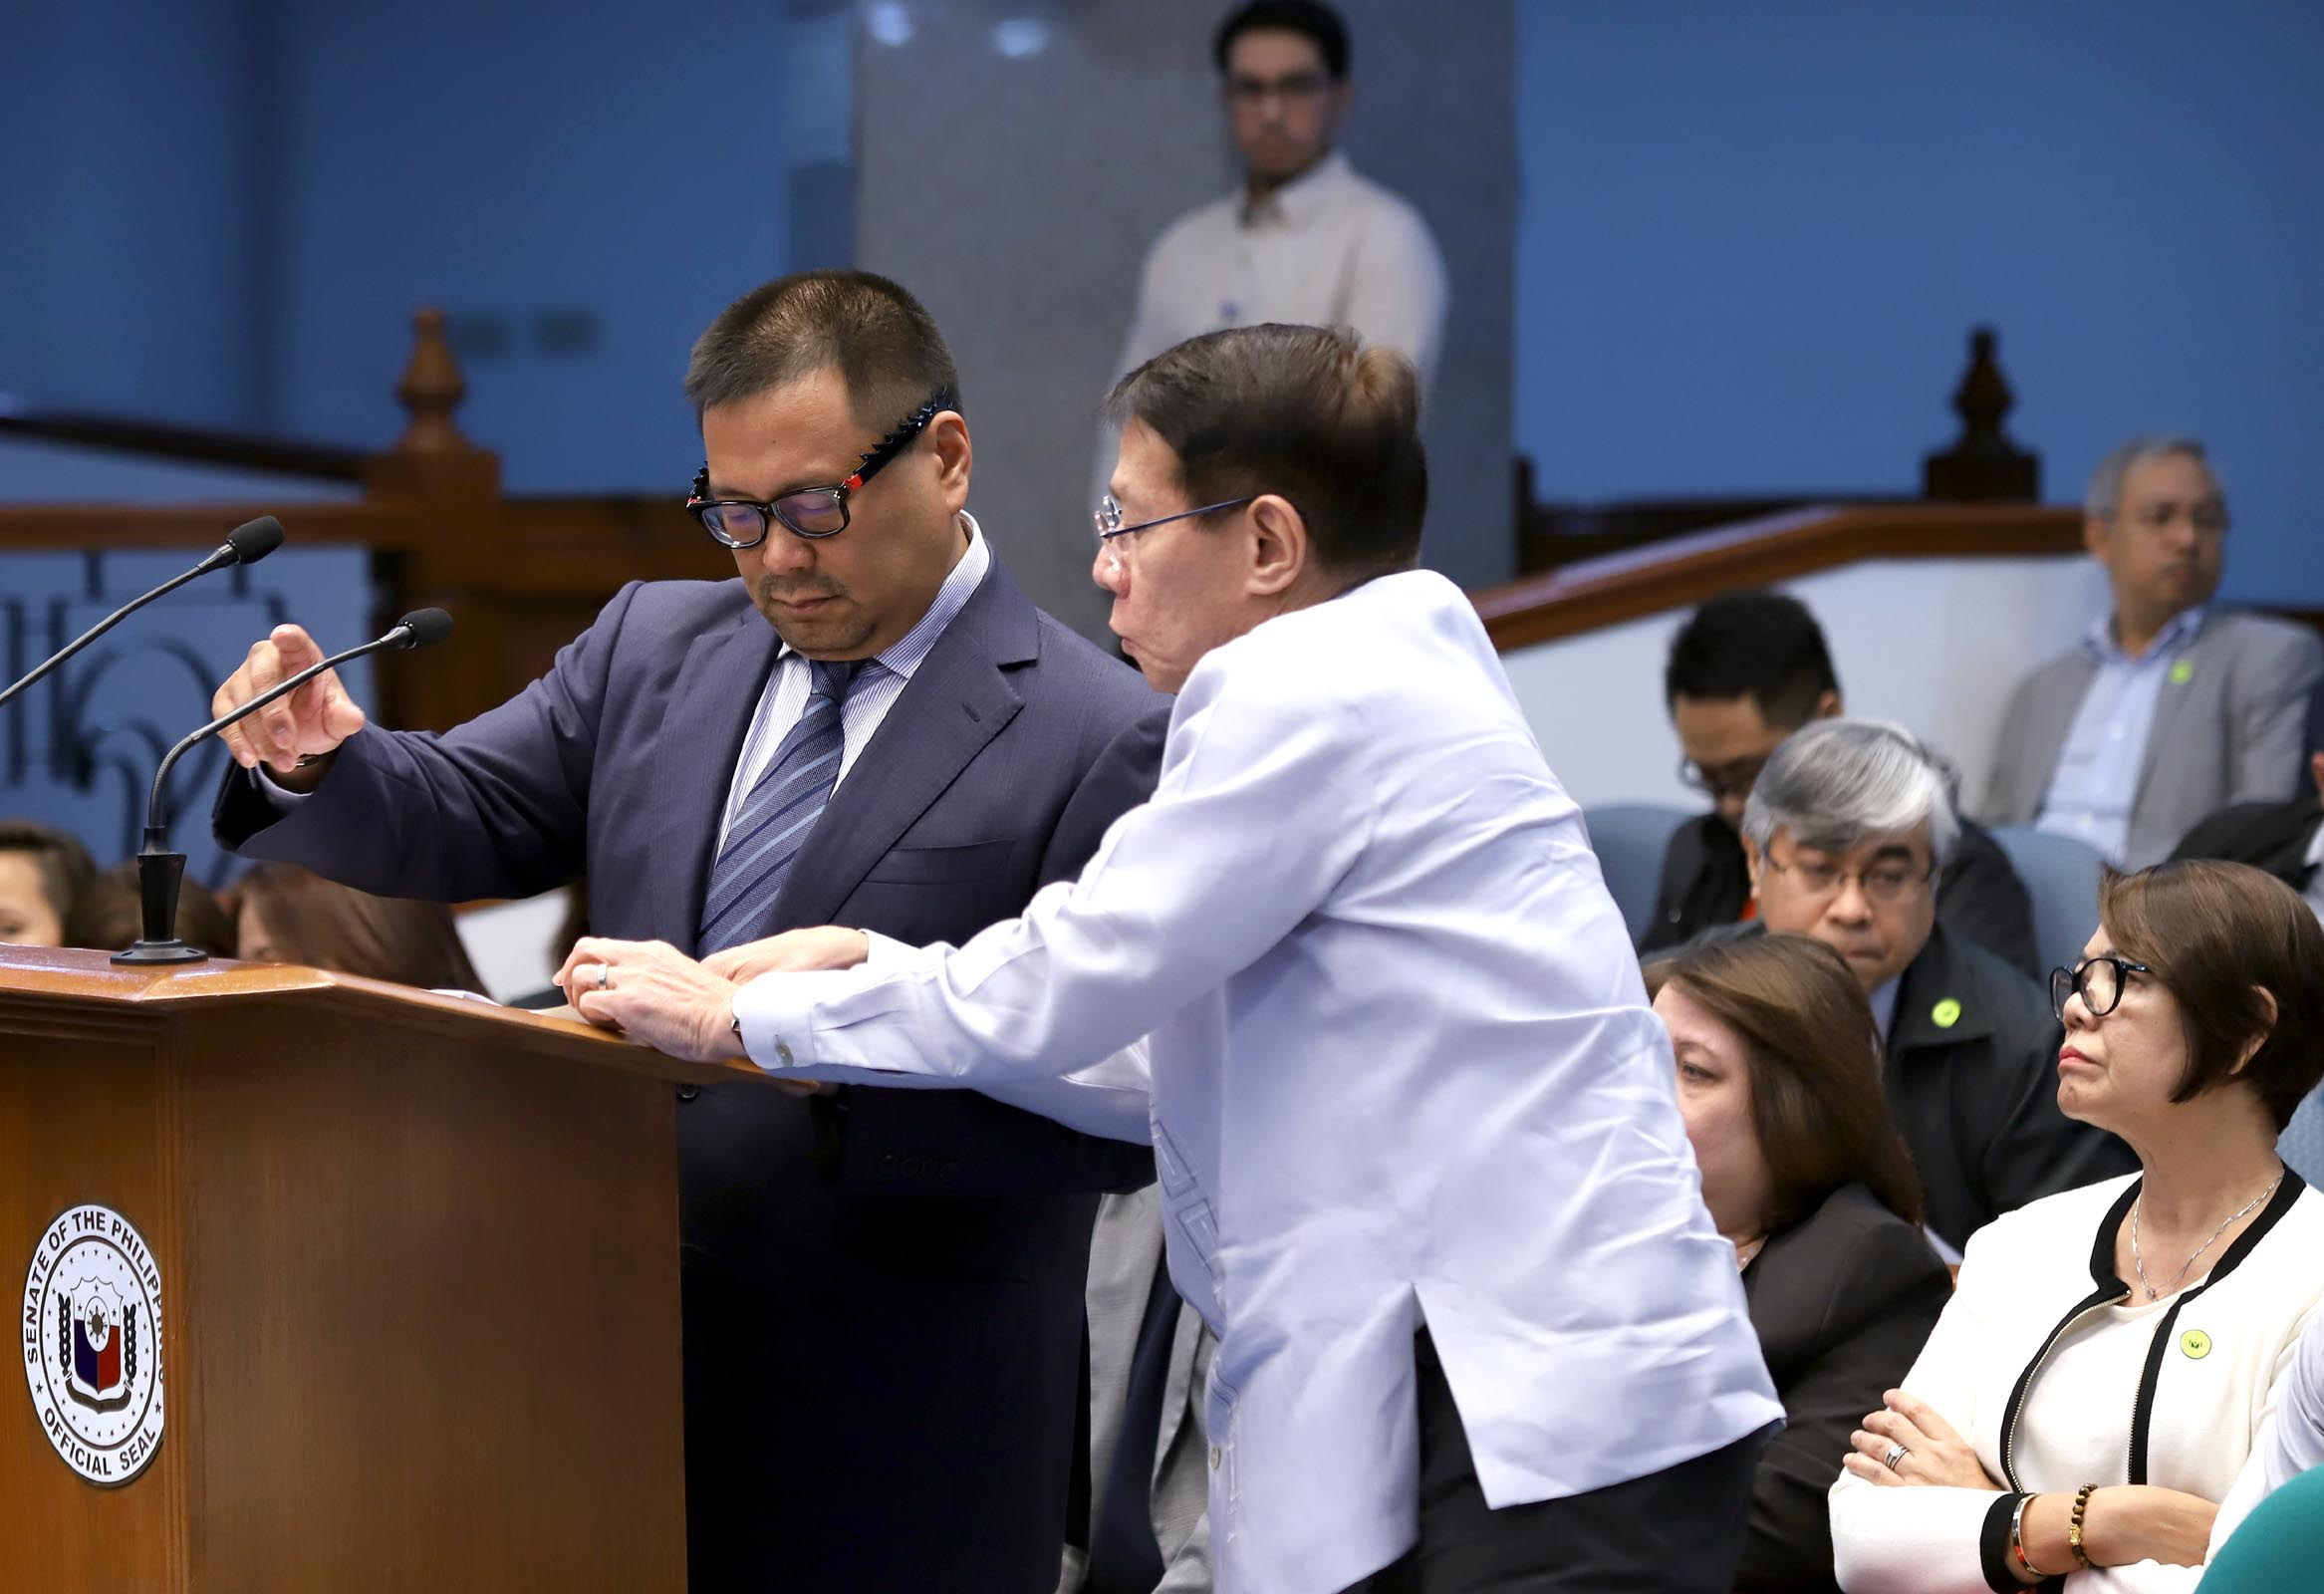 DOH BUDGET. Senator JV Ejercito, chairman of the Senate Committee on Health and Demography, seeks clarification from Health Secretary Francisco Duque during the resumption of the plenary deliberations on the proposed 2019 budget. Photo by Albert Calvelo/Senate PRIB